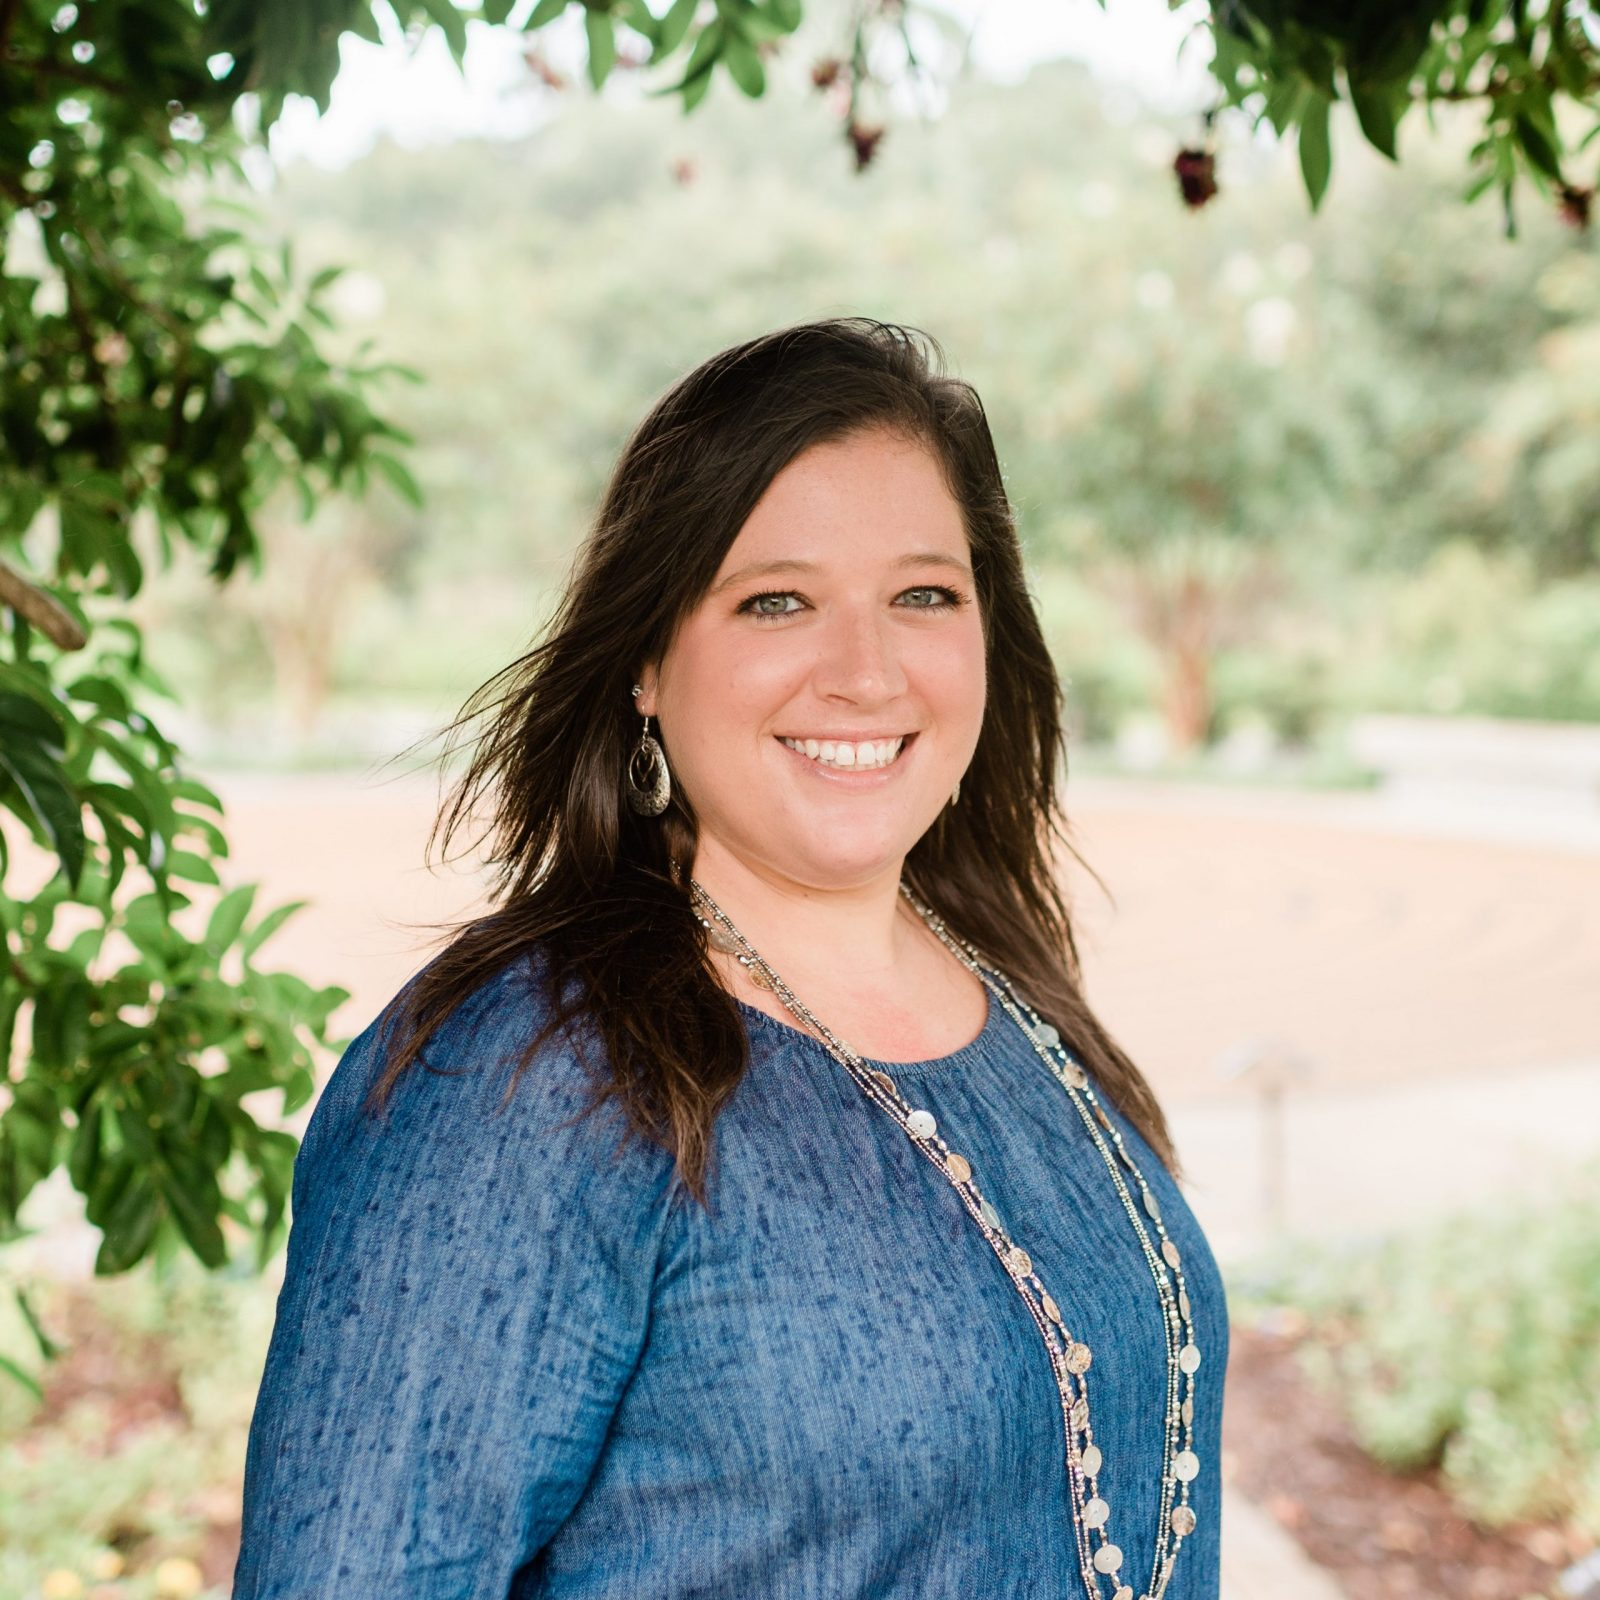 Jamie Cade scaled - Community Life Church, Gulf Breeze, FL - staff